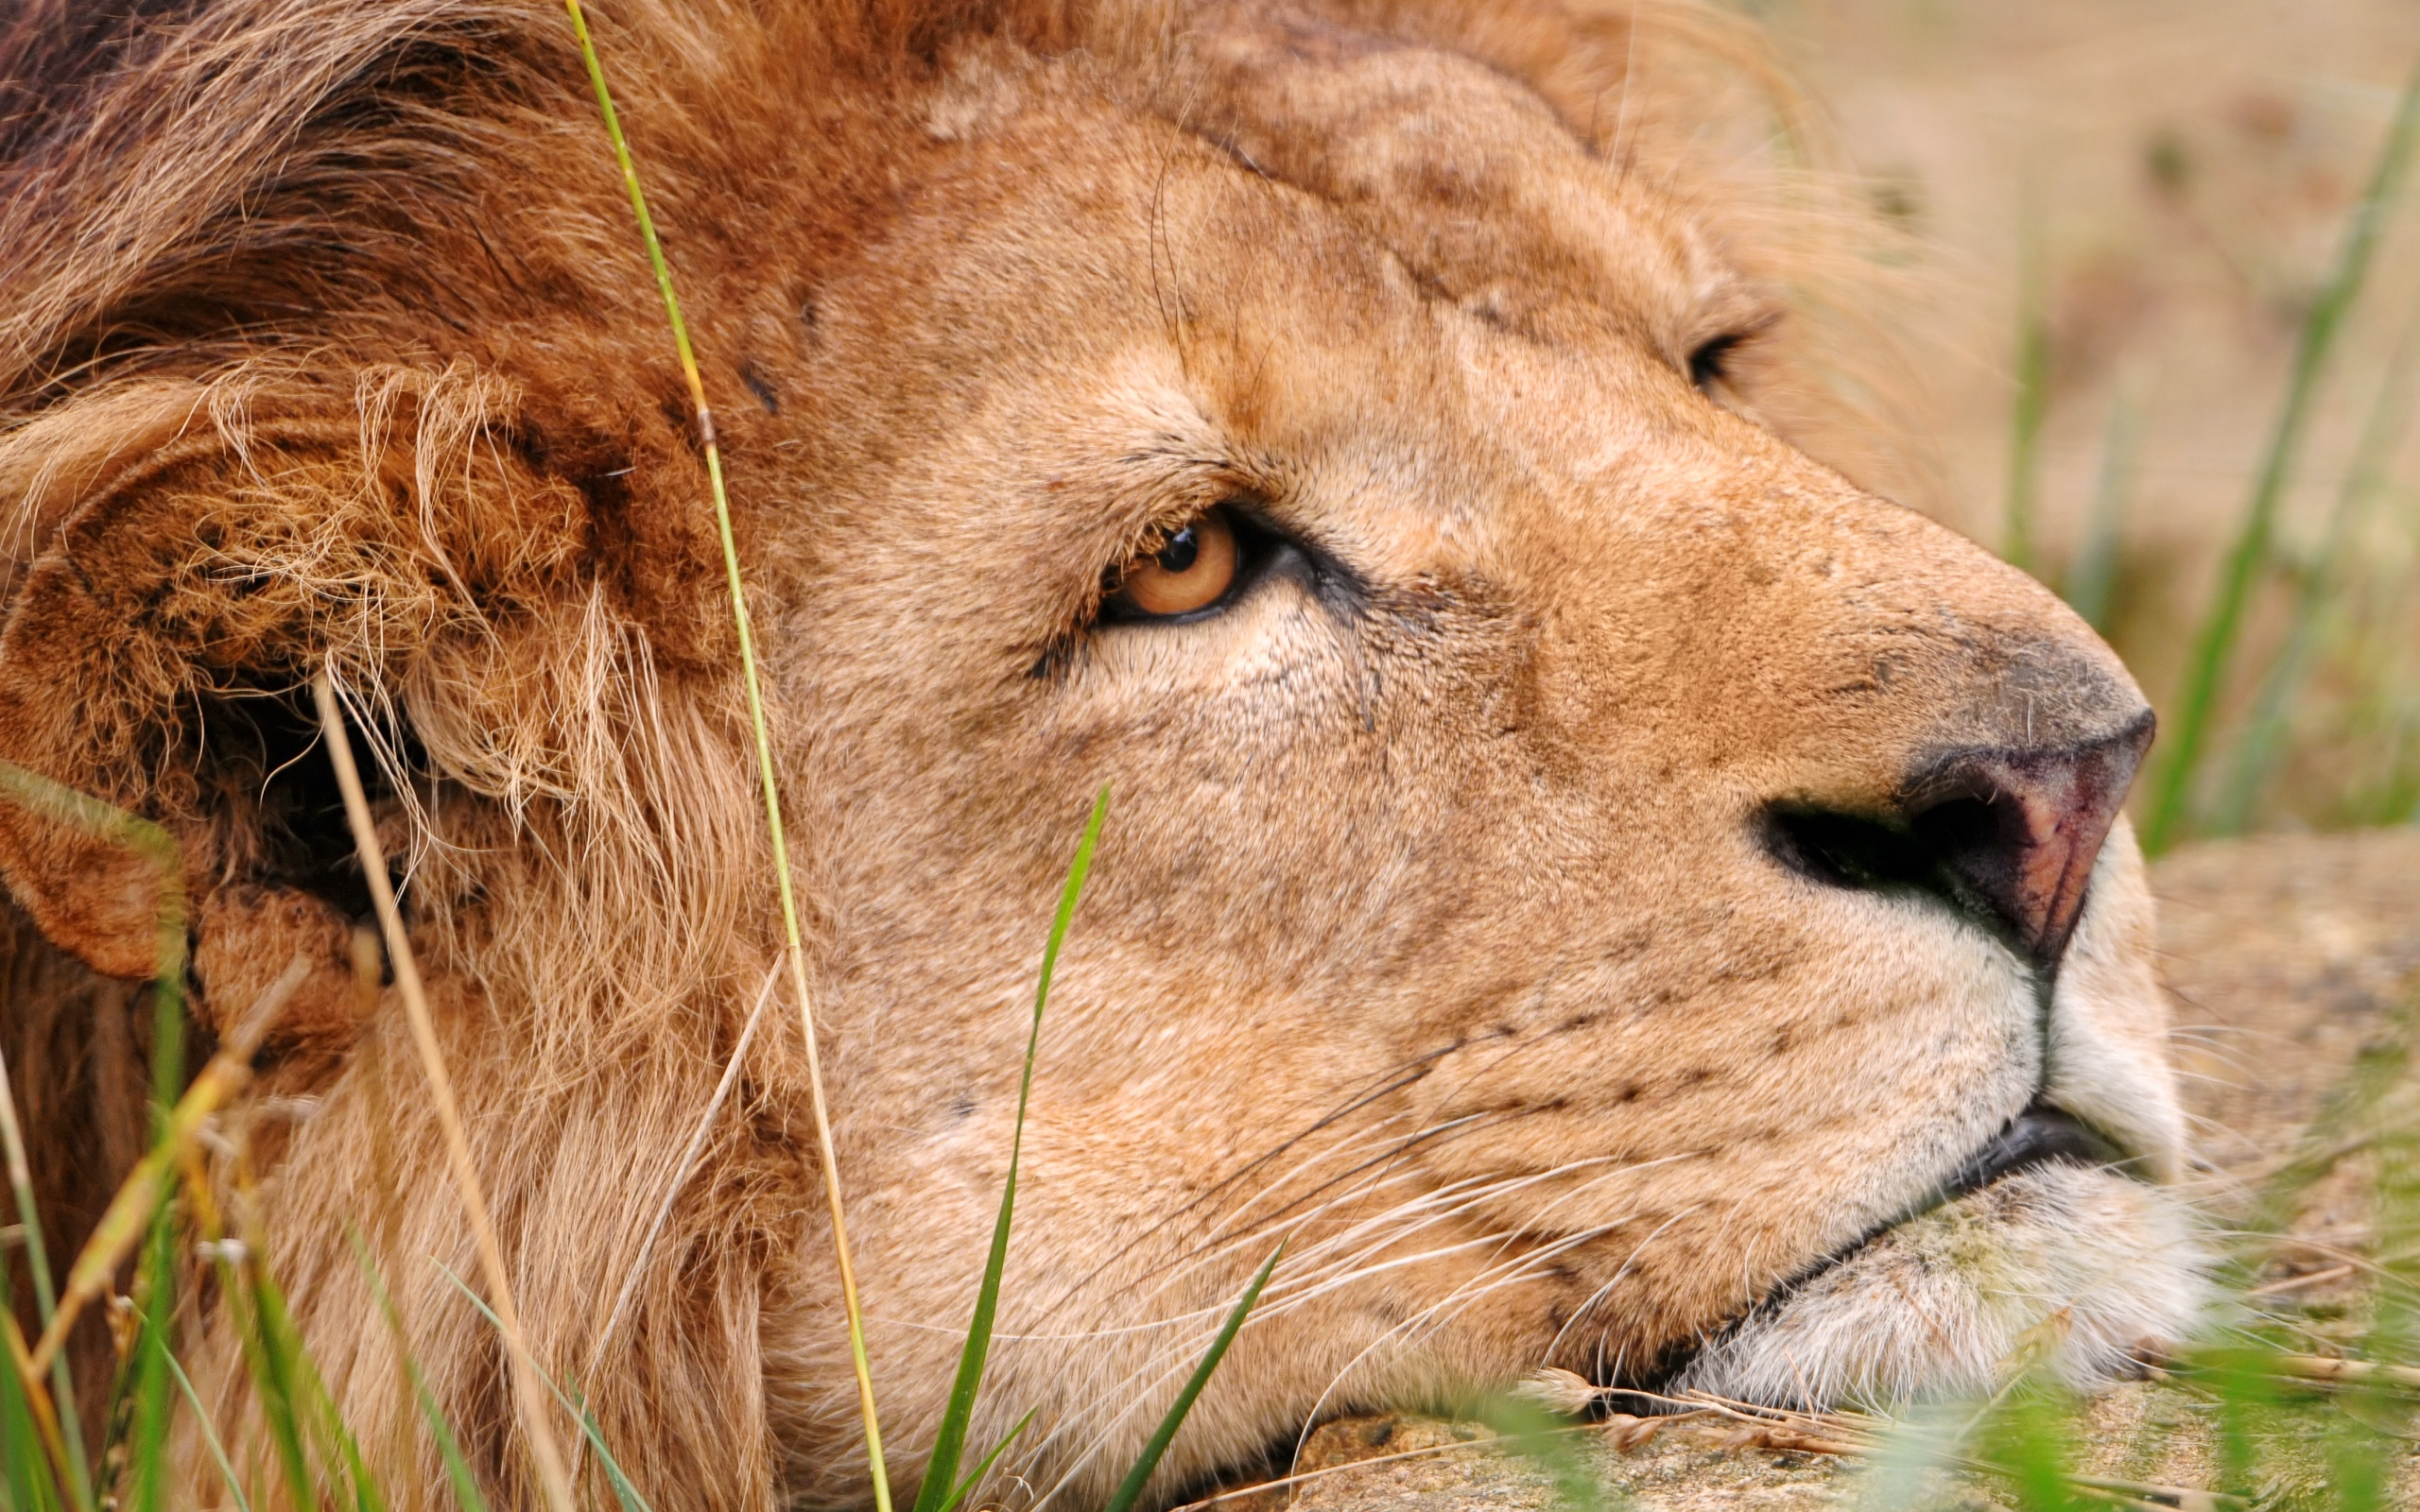 44179 download wallpaper Animals, Tigers screensavers and pictures for free